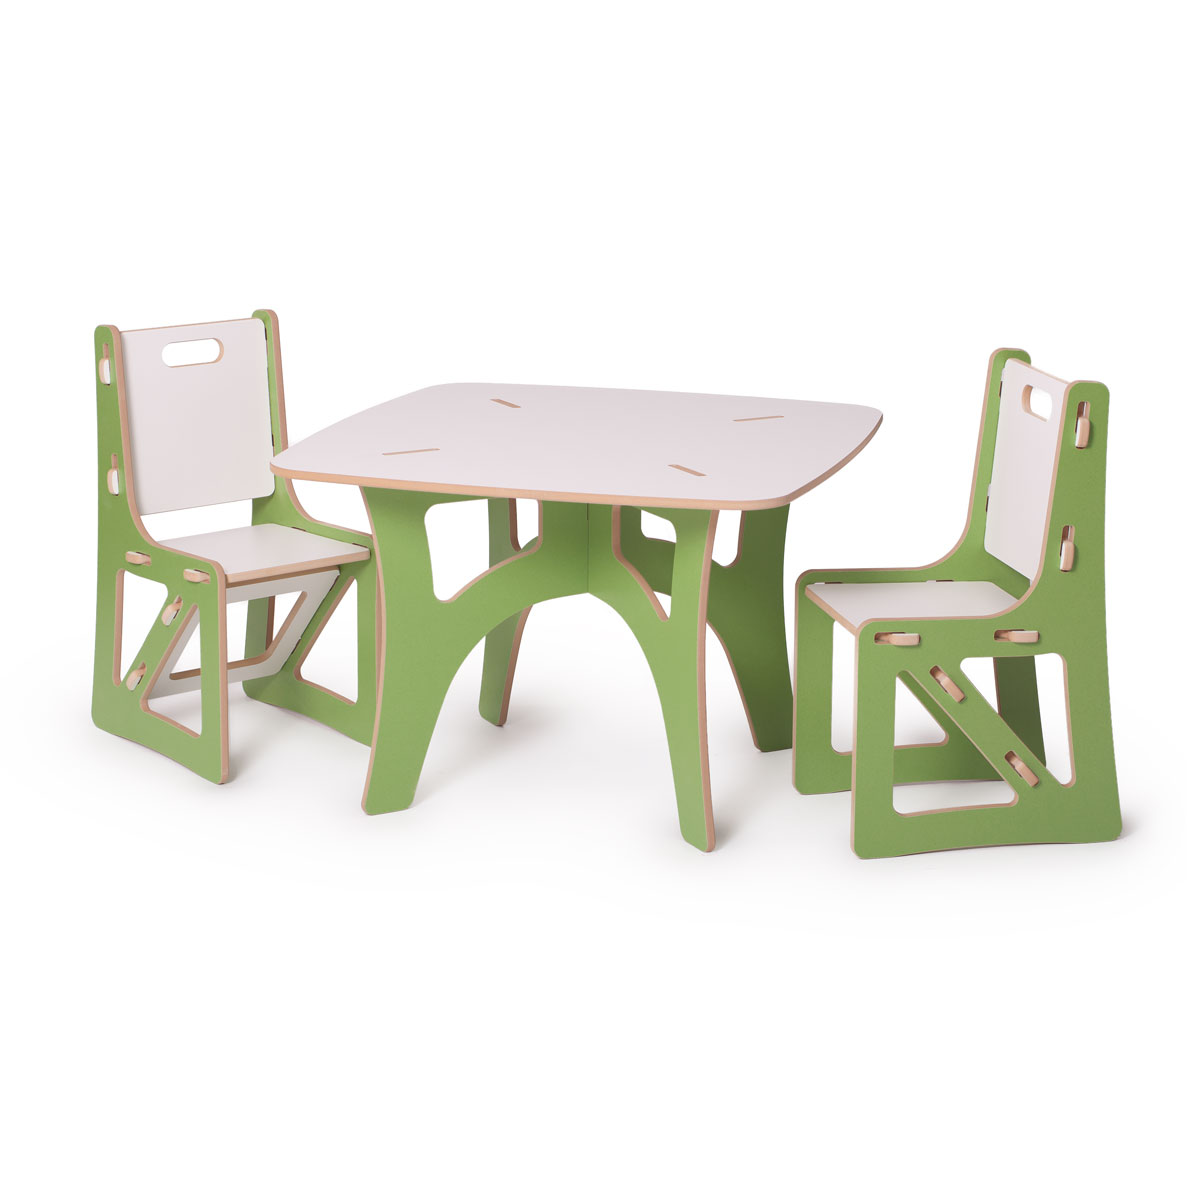 Modern Kid's Table and Chairs